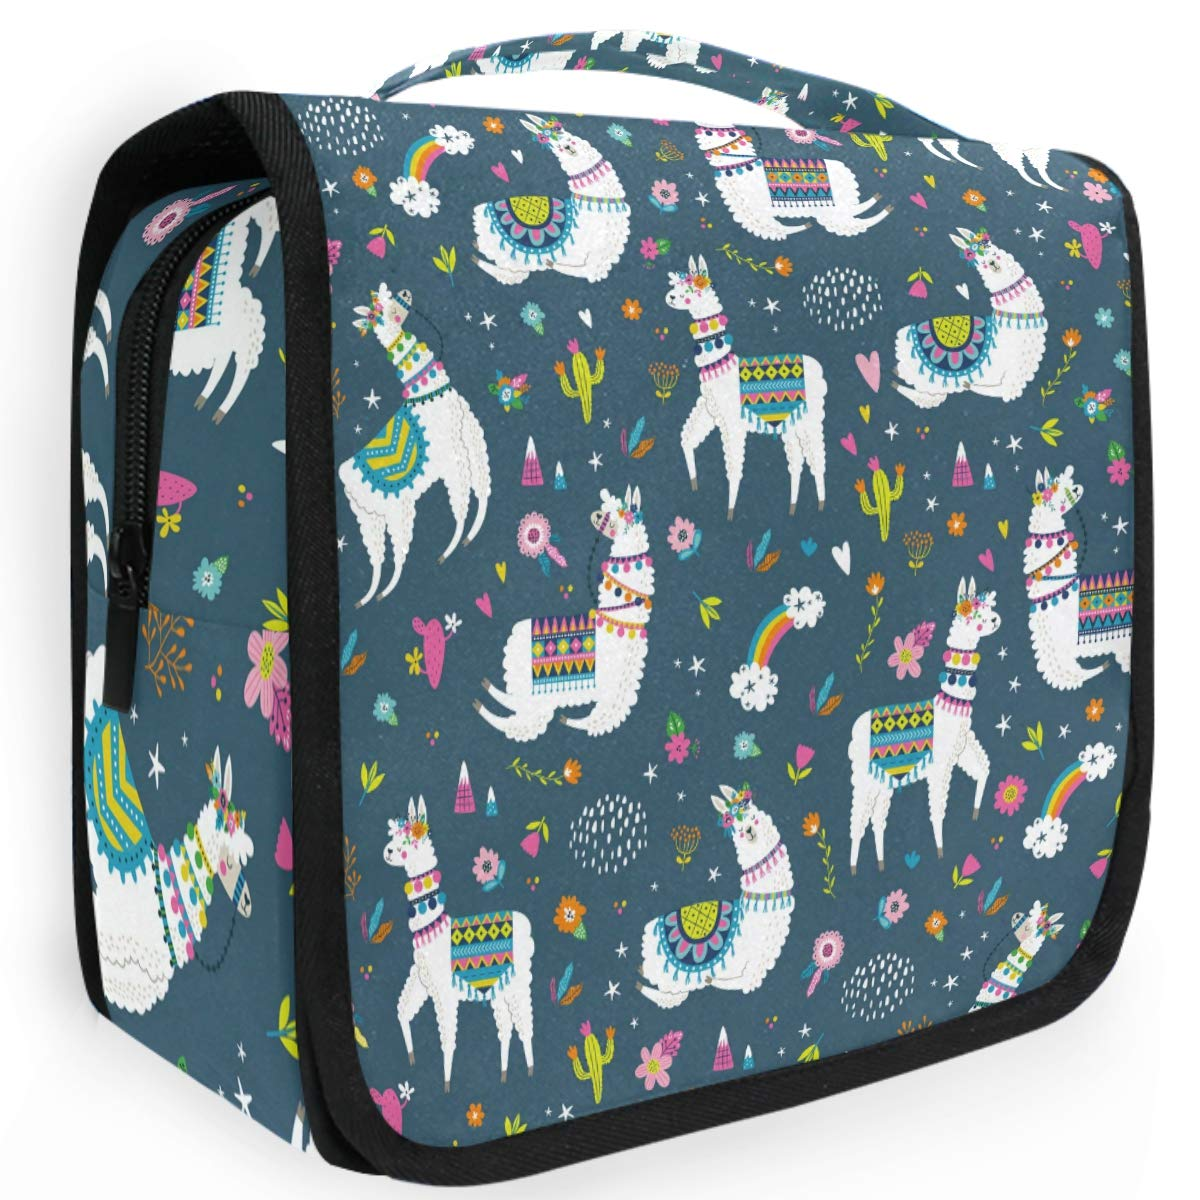 Olinyou Vintage Llama Cactus Flower Tropical Animal Alpaca Star Travel Toiletry Cosmetic Bag Hanging Shower Makeup Bag Pouch Portable Train Tote Case Organizer Storage For Women Girls